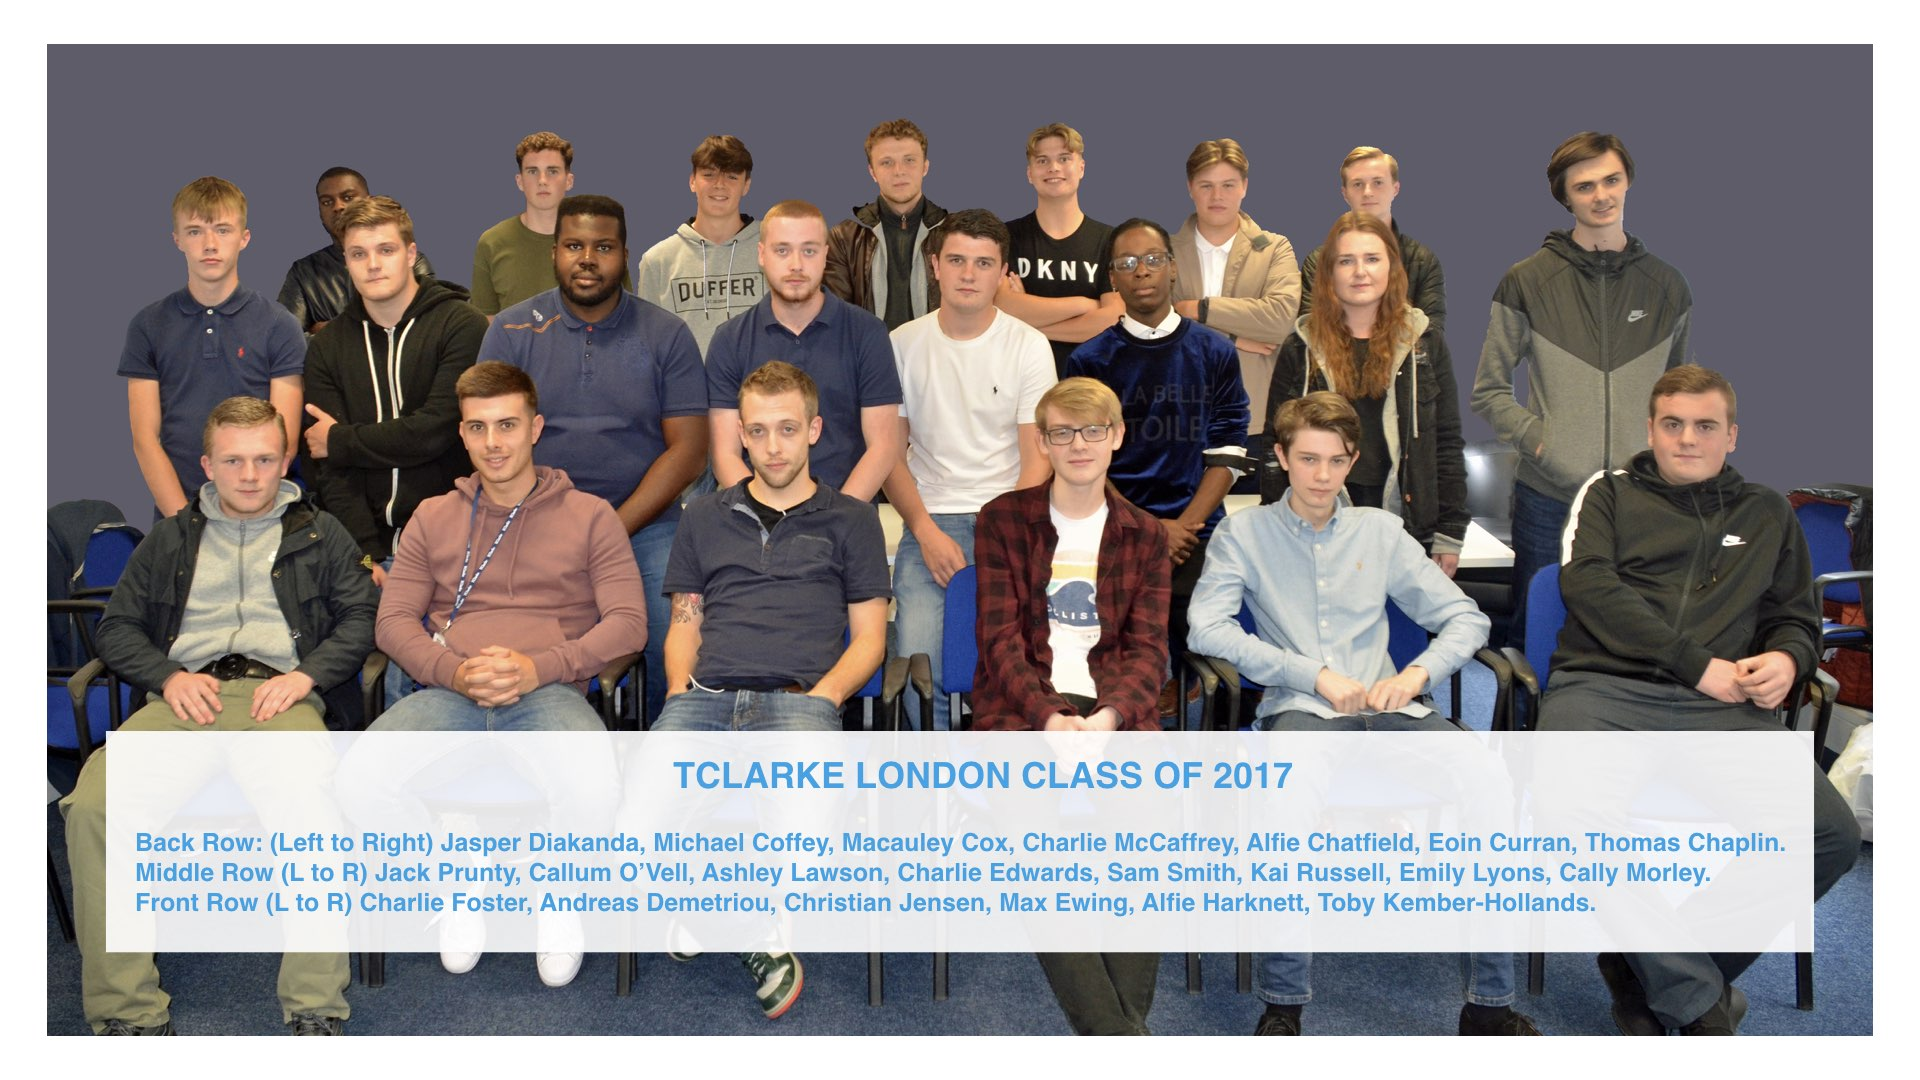 John Burrows and Jo Lacey-Smith introduce London's class of 2017